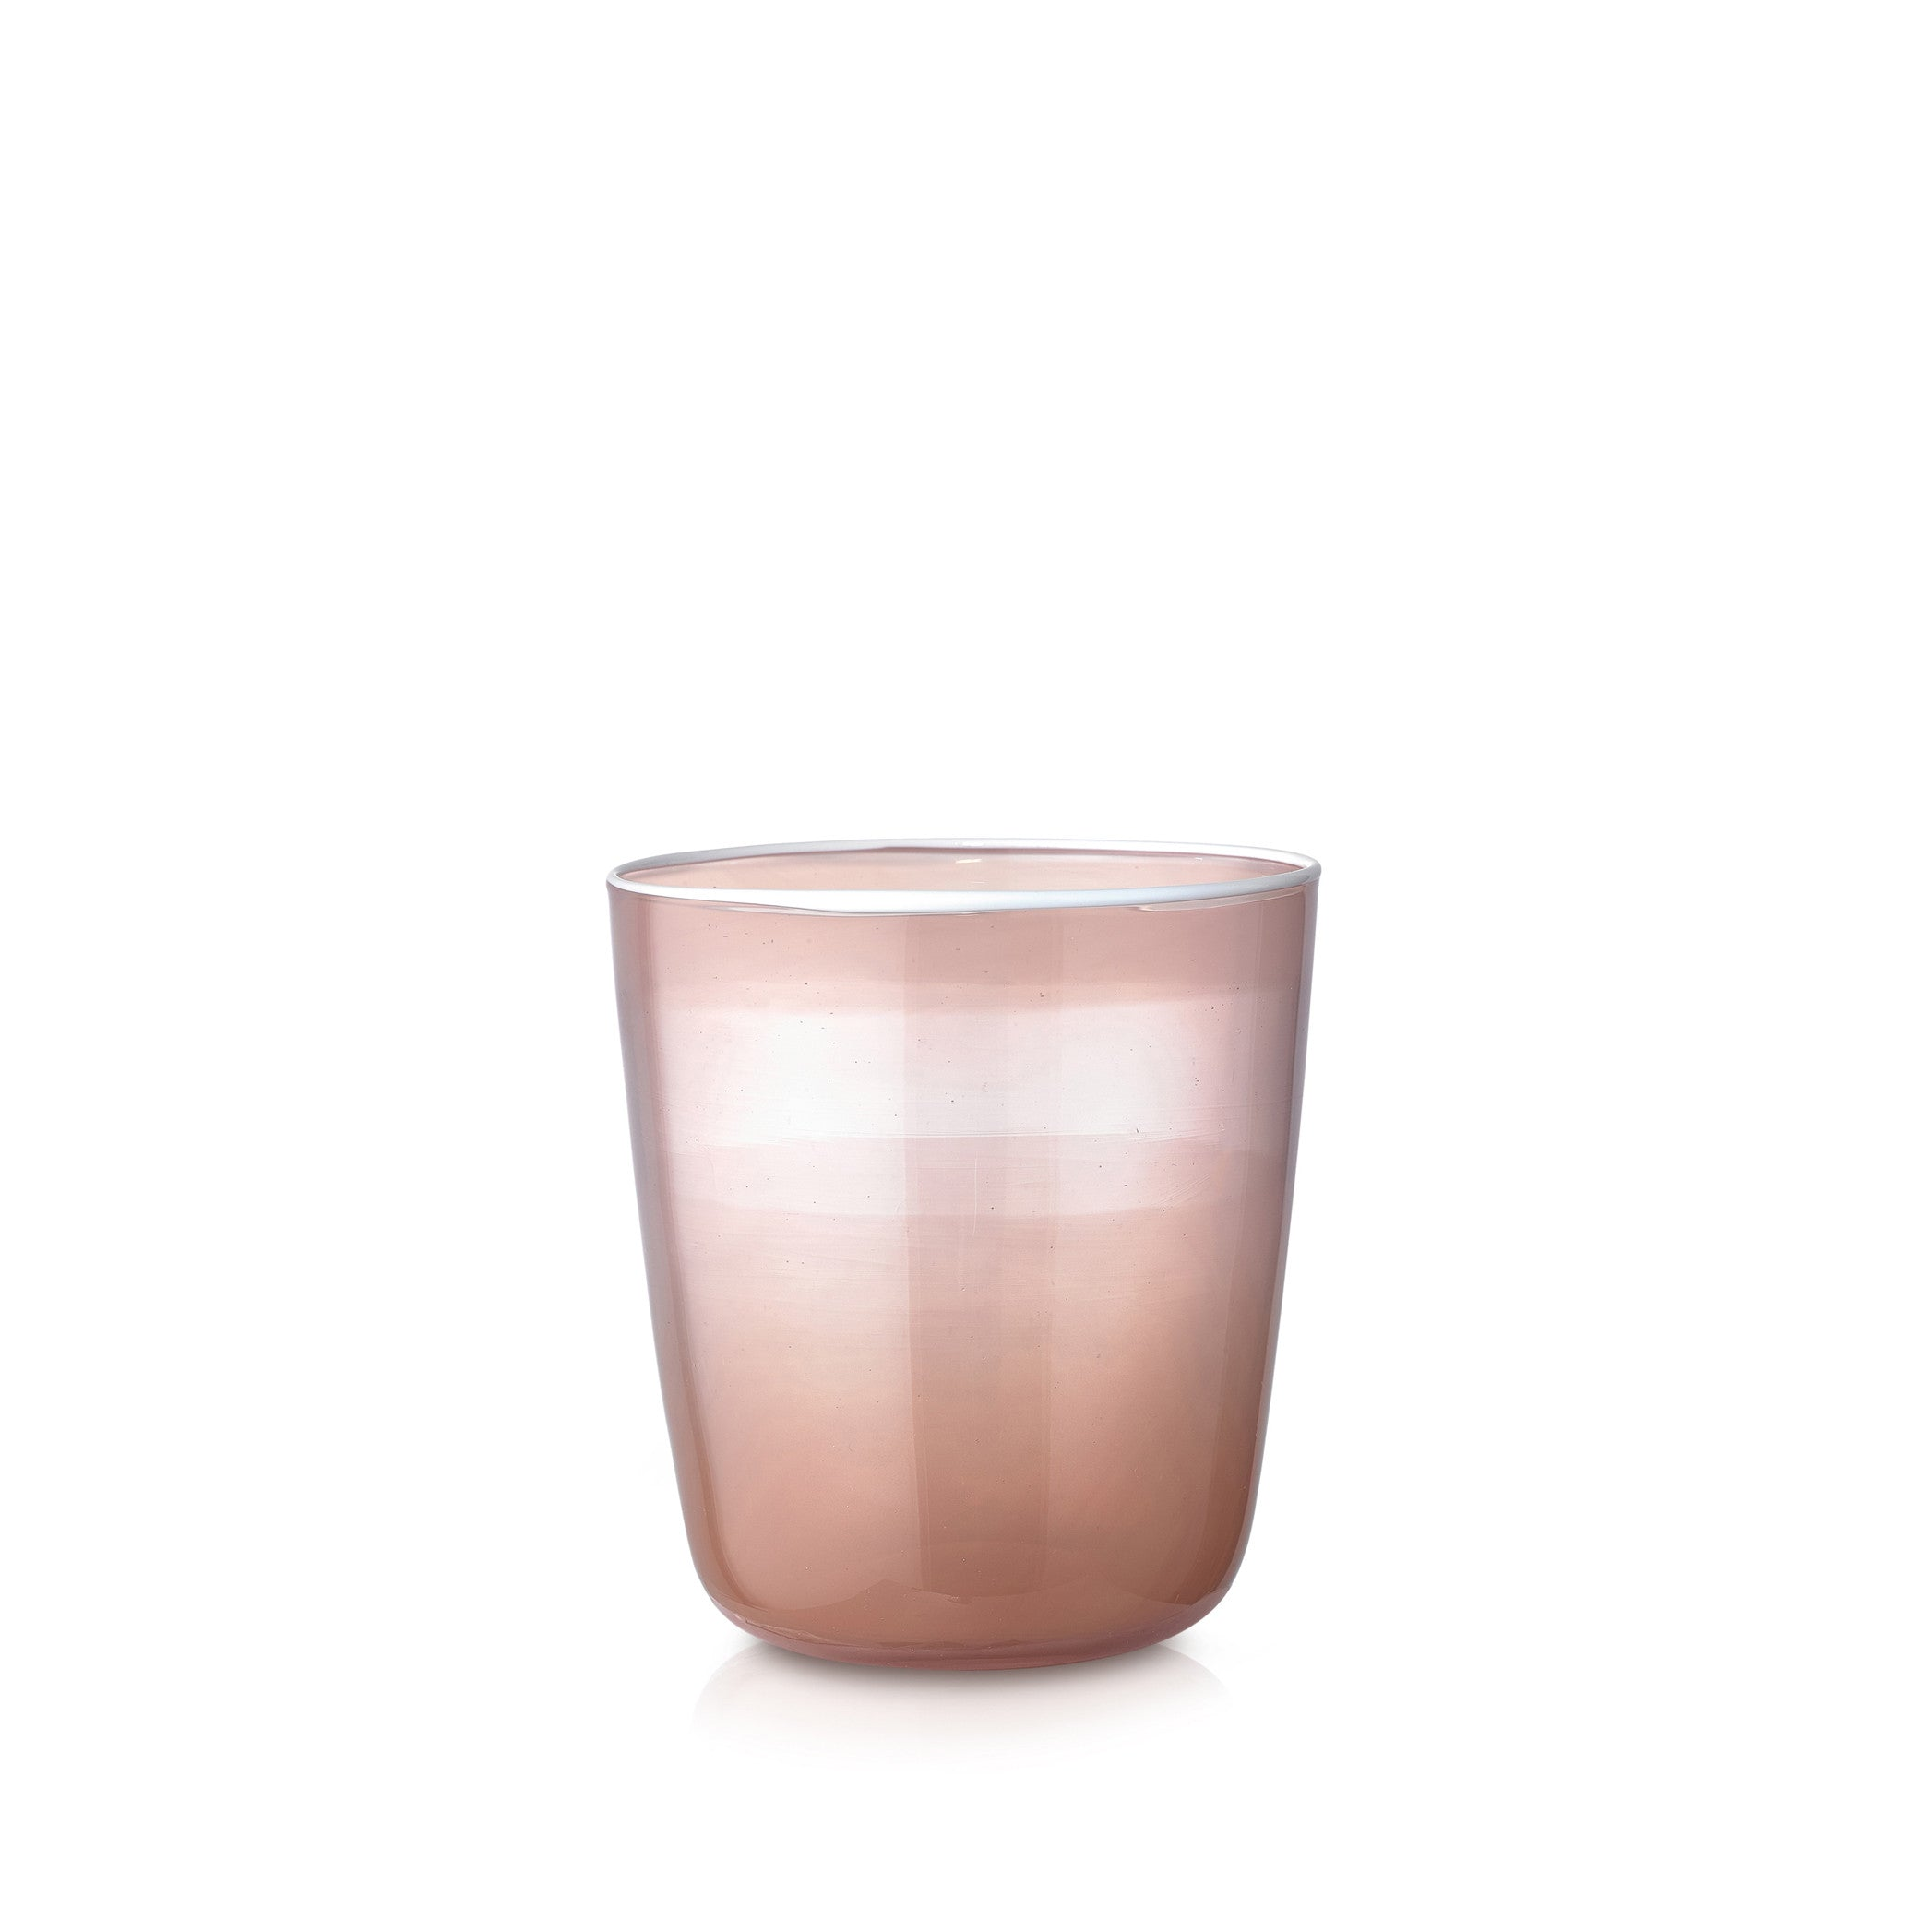 Handblown Bumba Glass in Dusty Pink